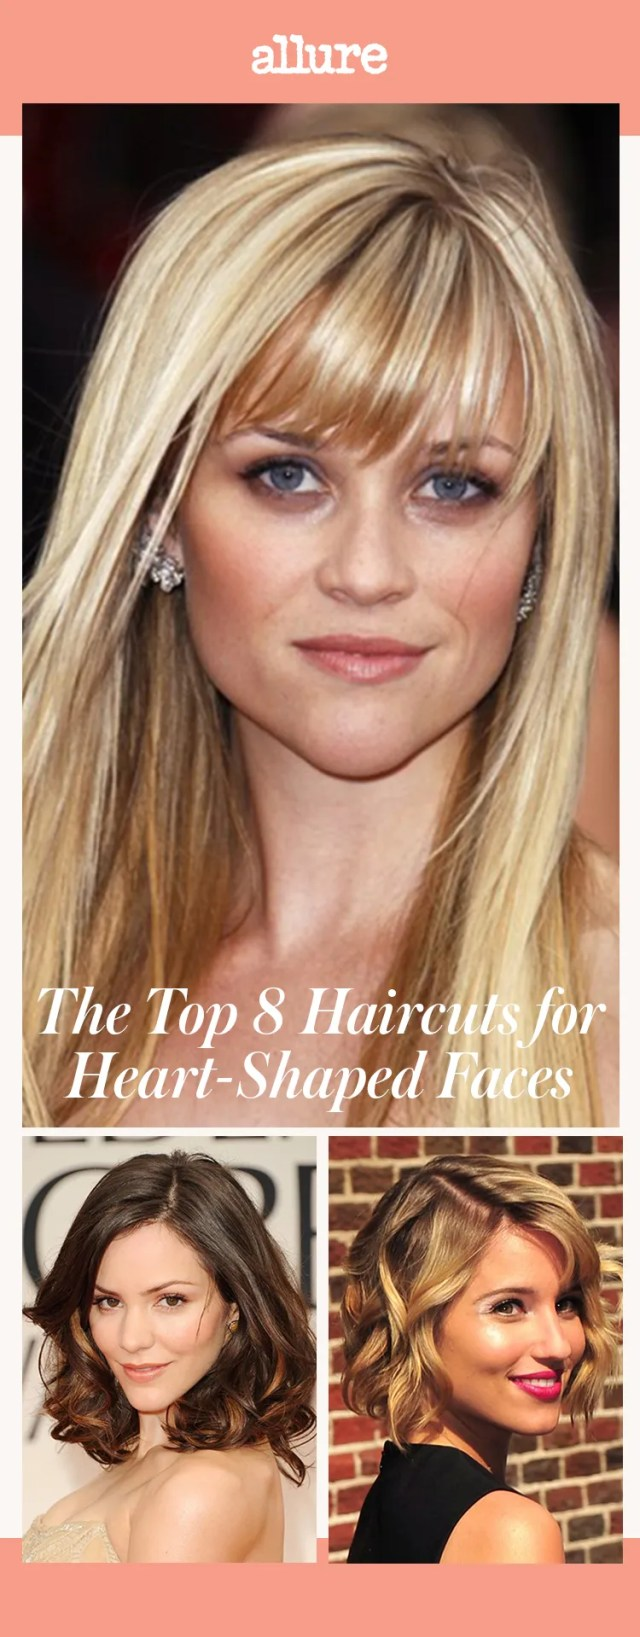 the top 8 haircuts for heart-shaped faces | allure